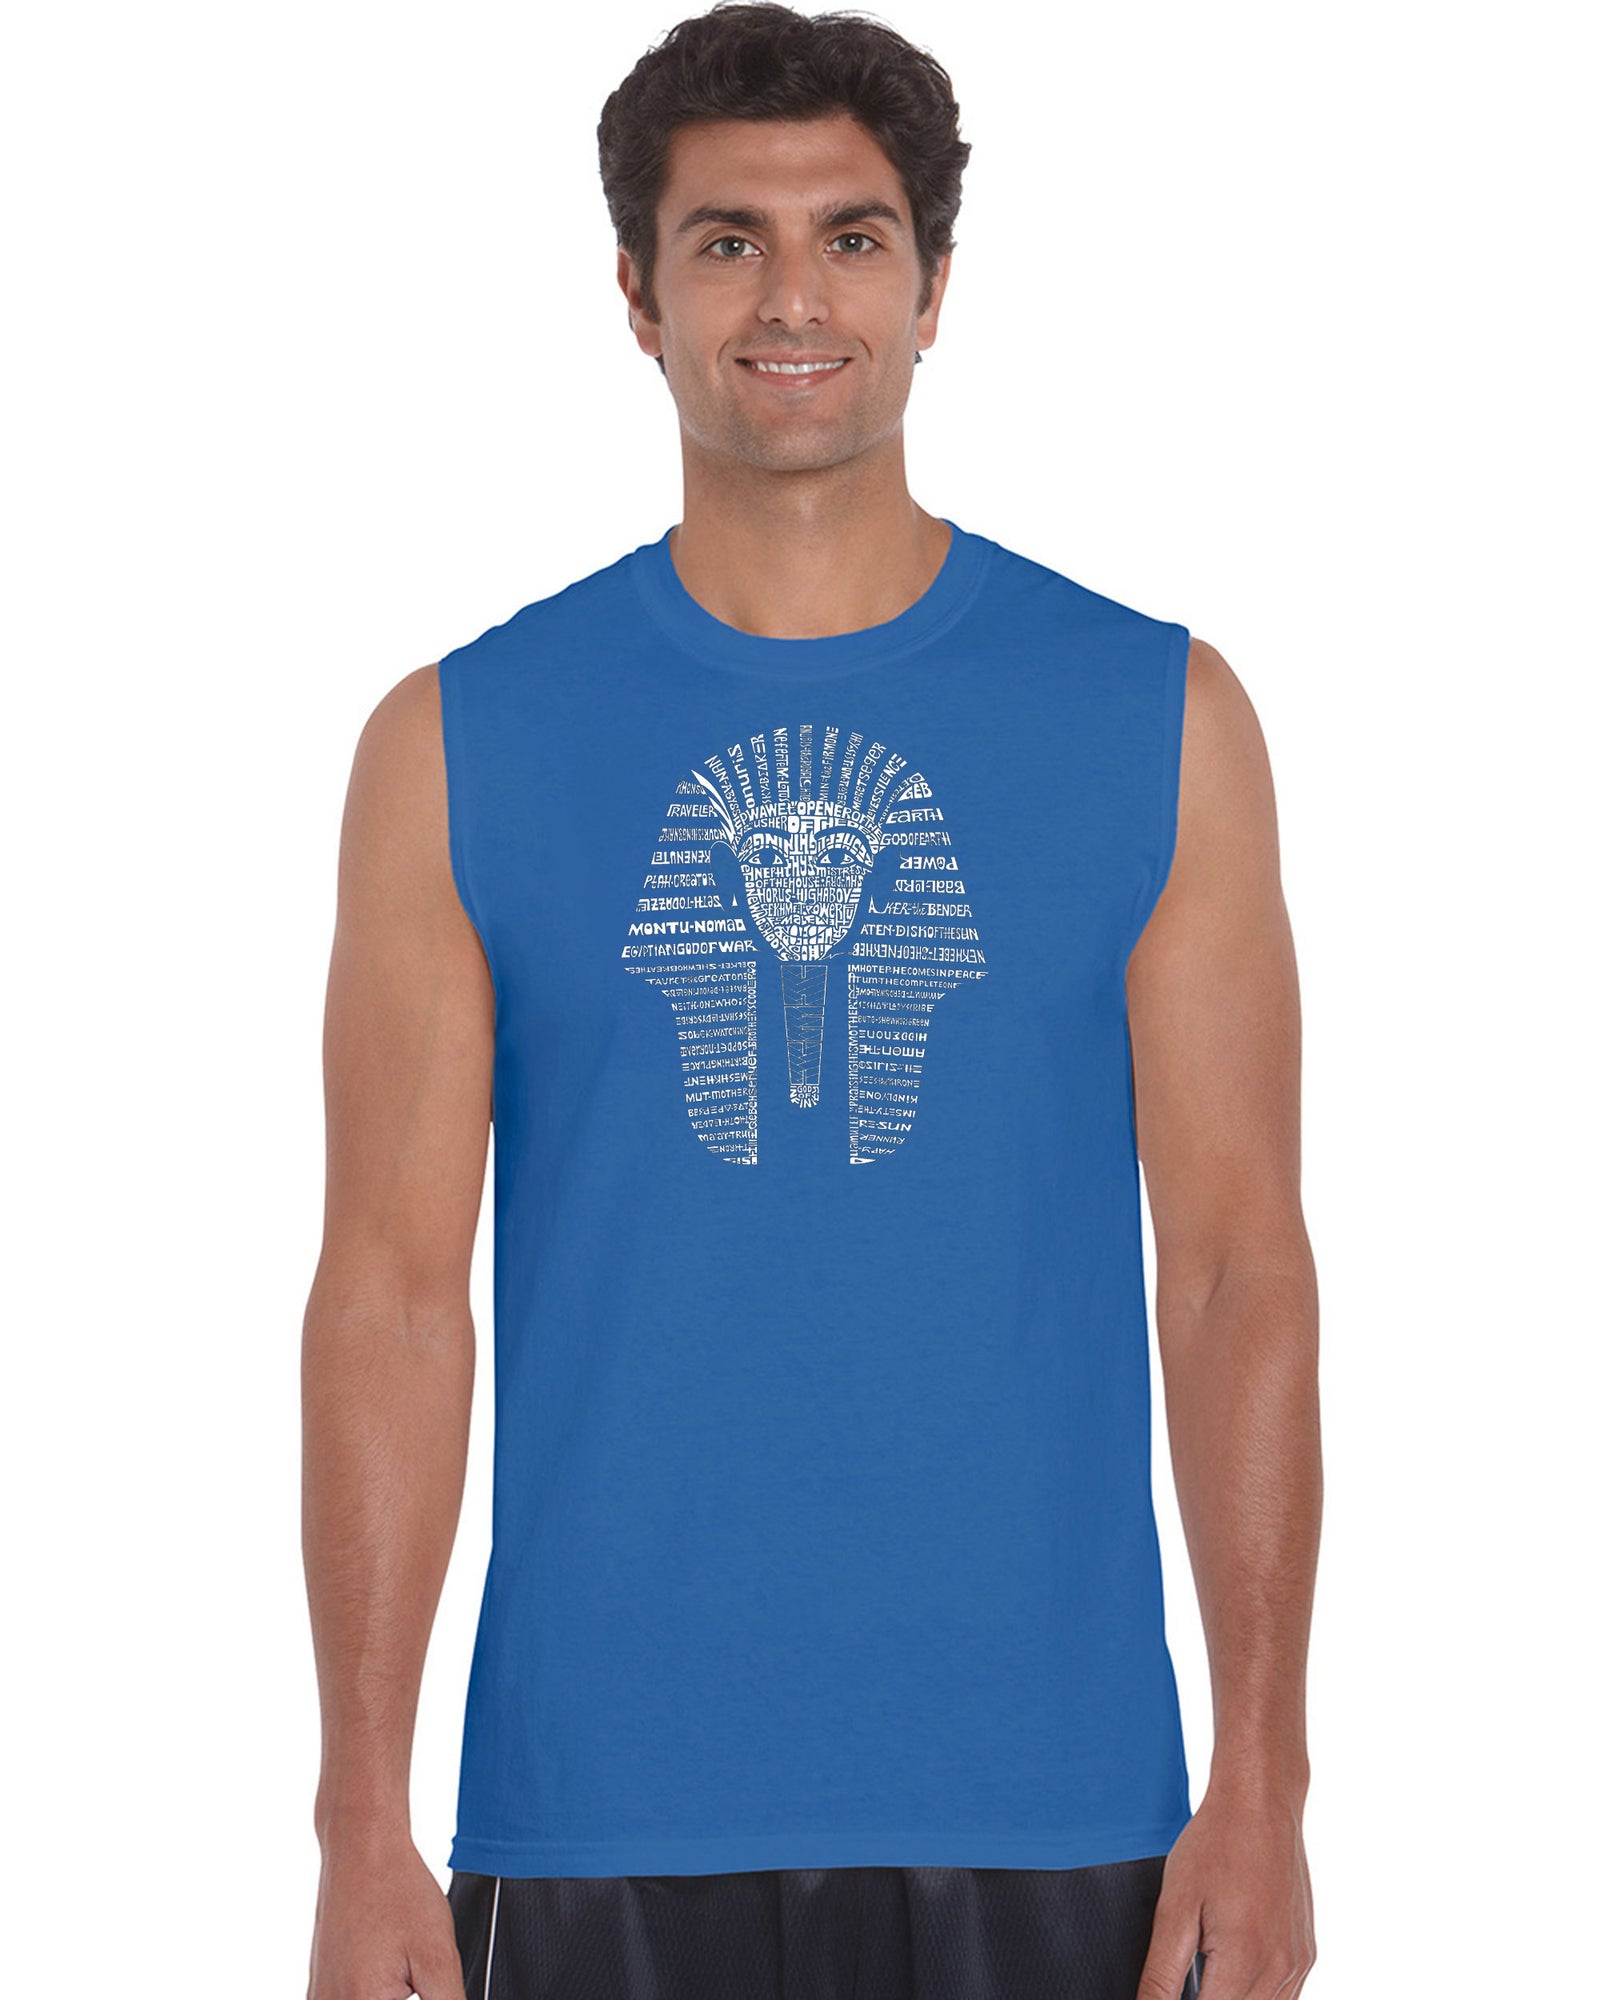 Men's Sleeveless T-shirt - KING TUT